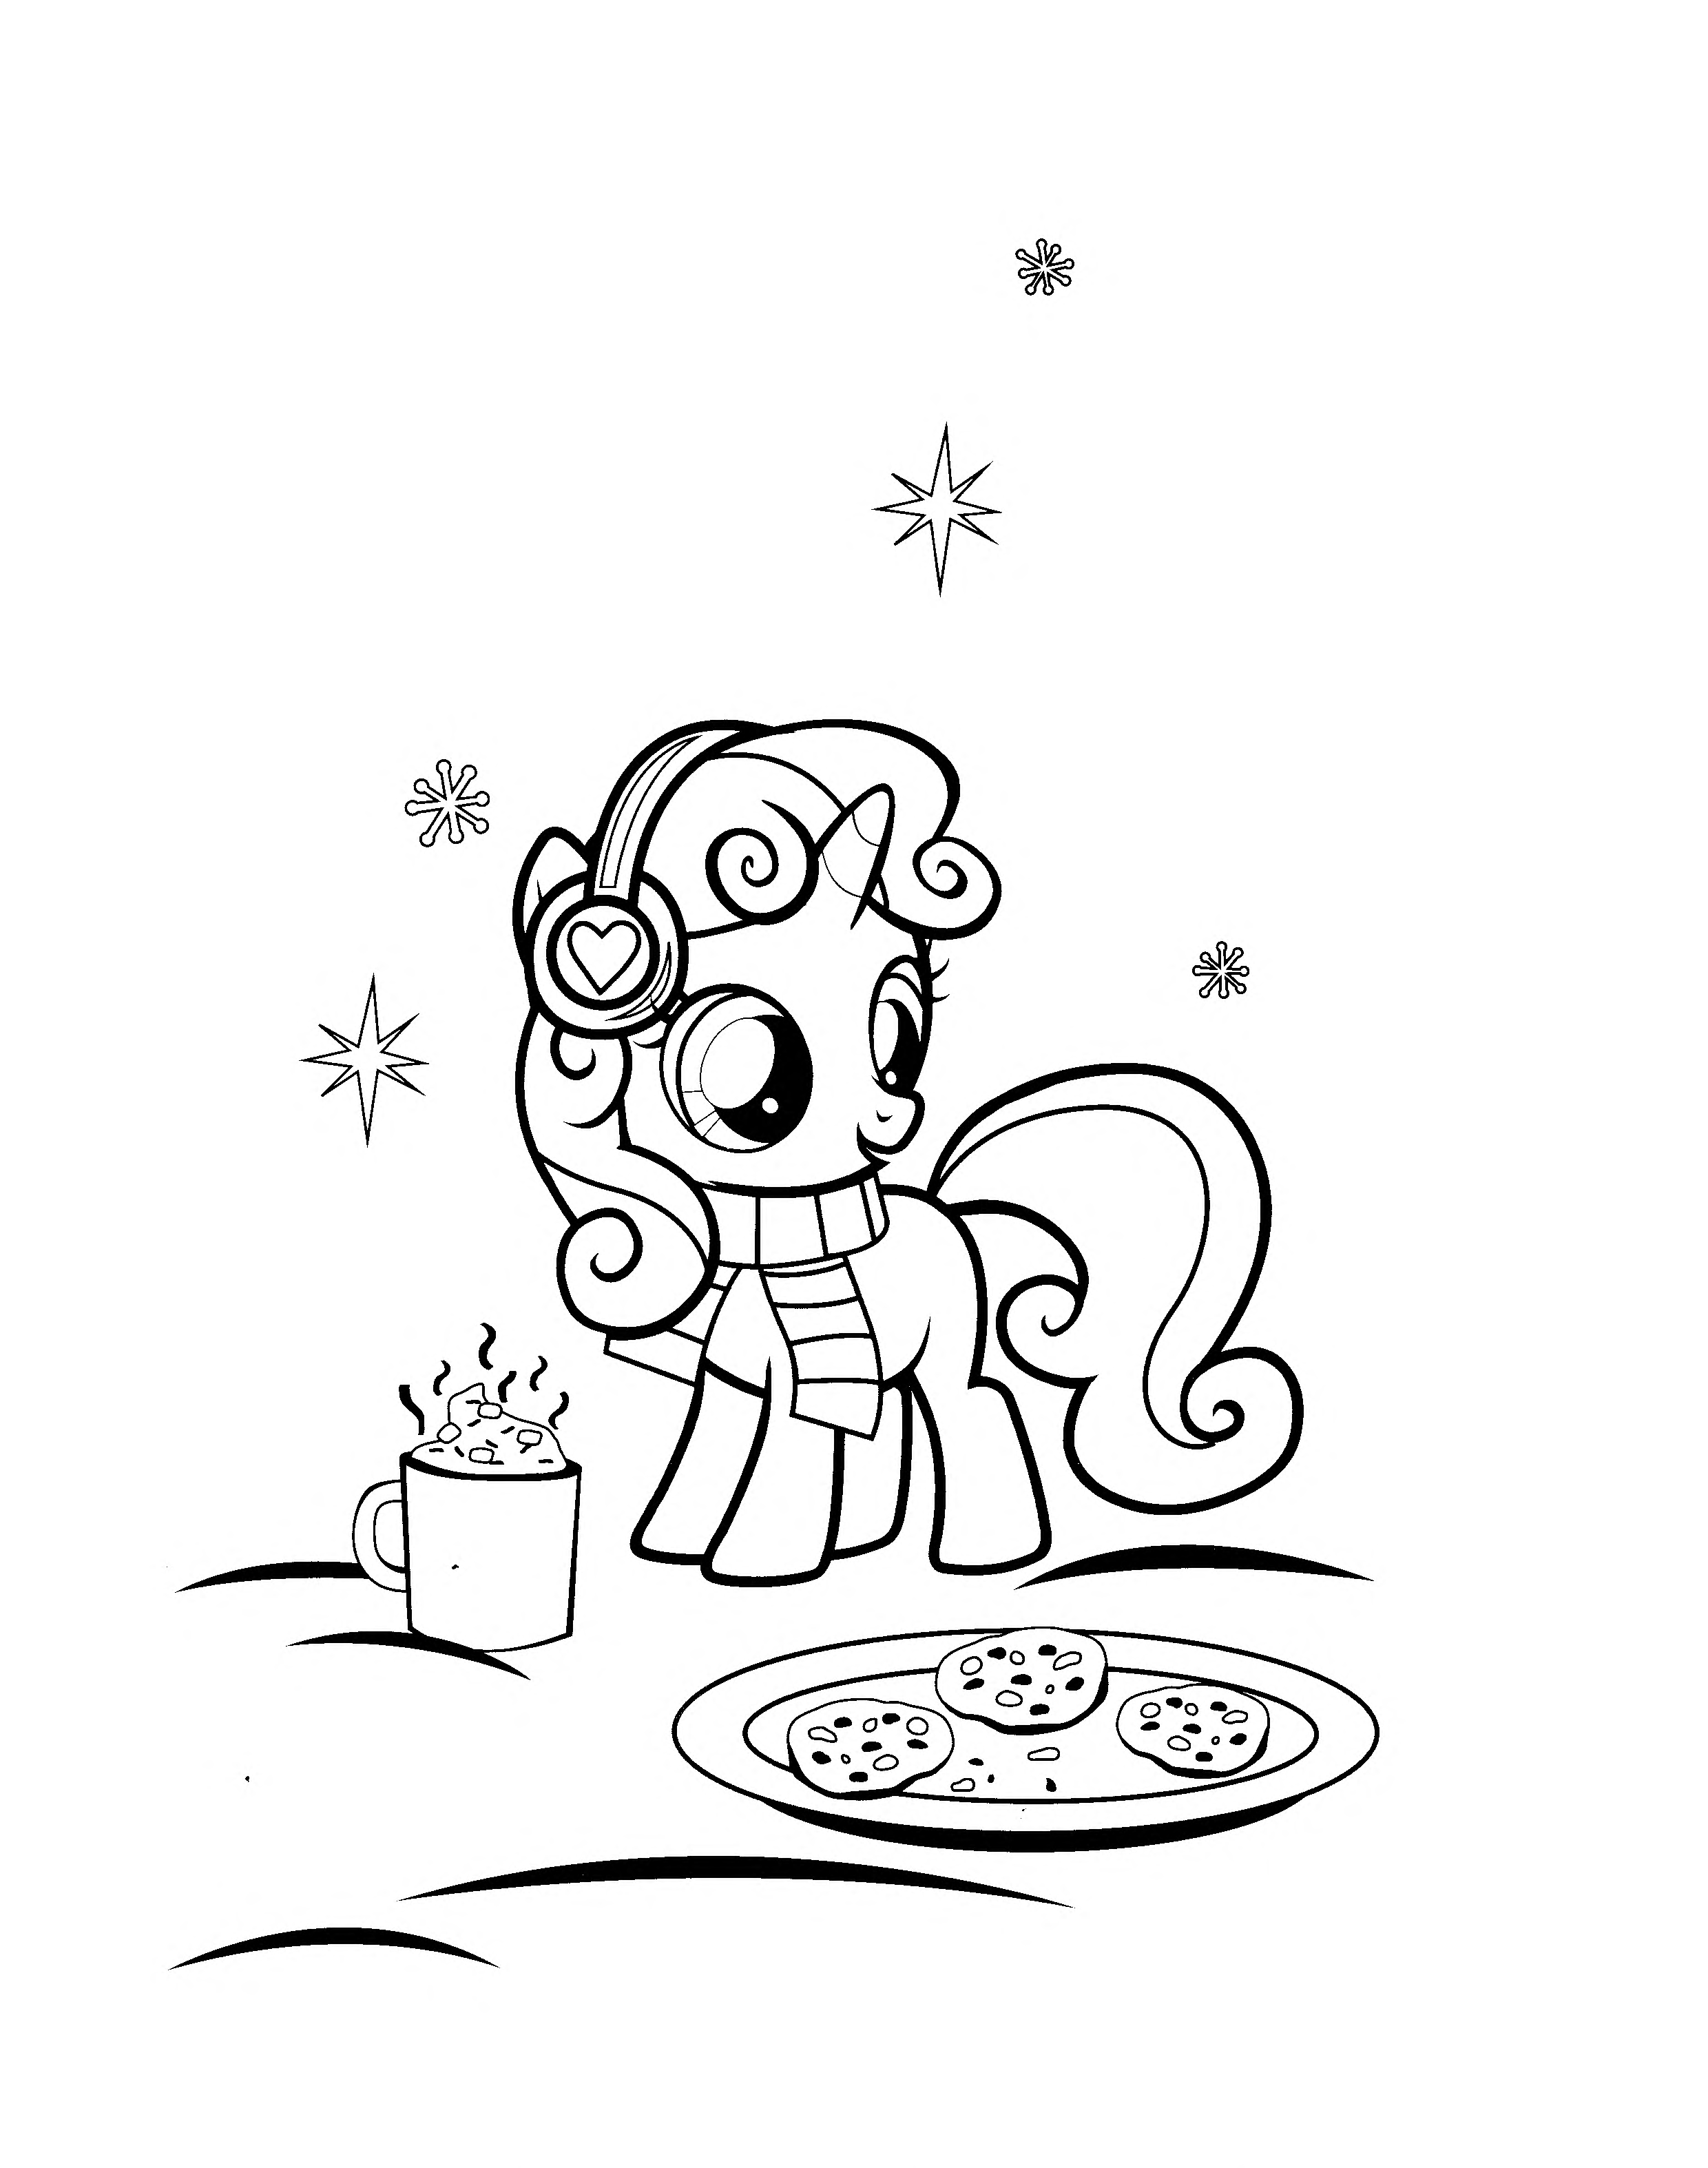 Pin by Quintina Smith on picks | My little pony coloring ...